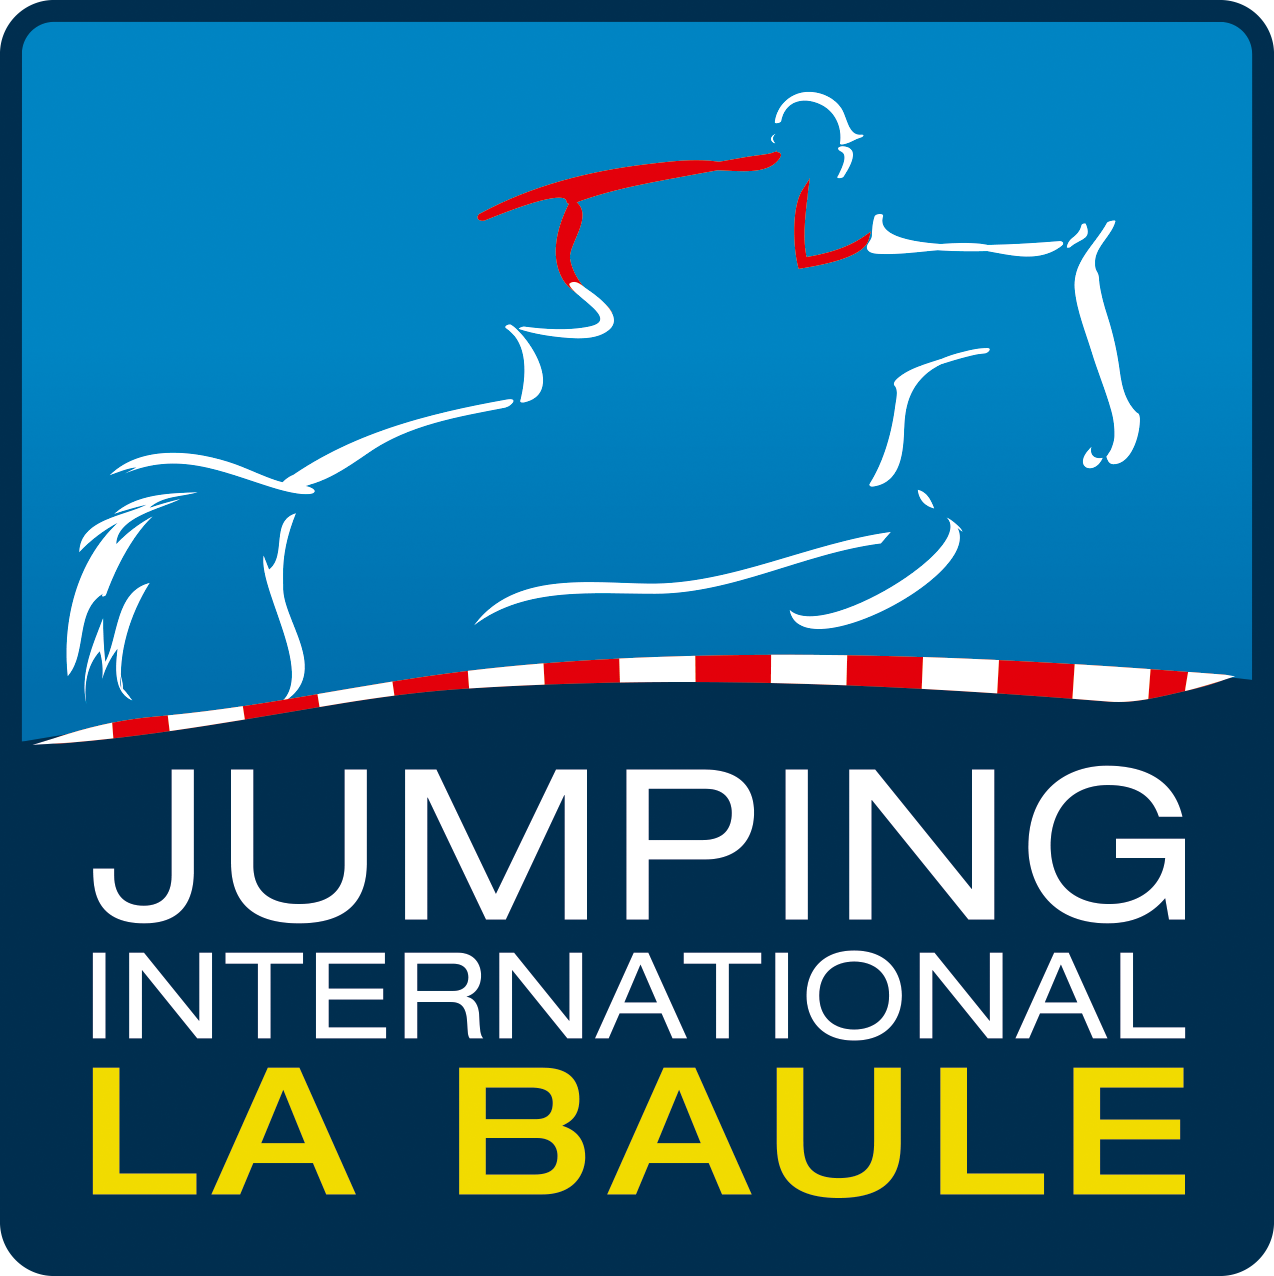 La Baule. L'herbe plus verte pour le jumping international